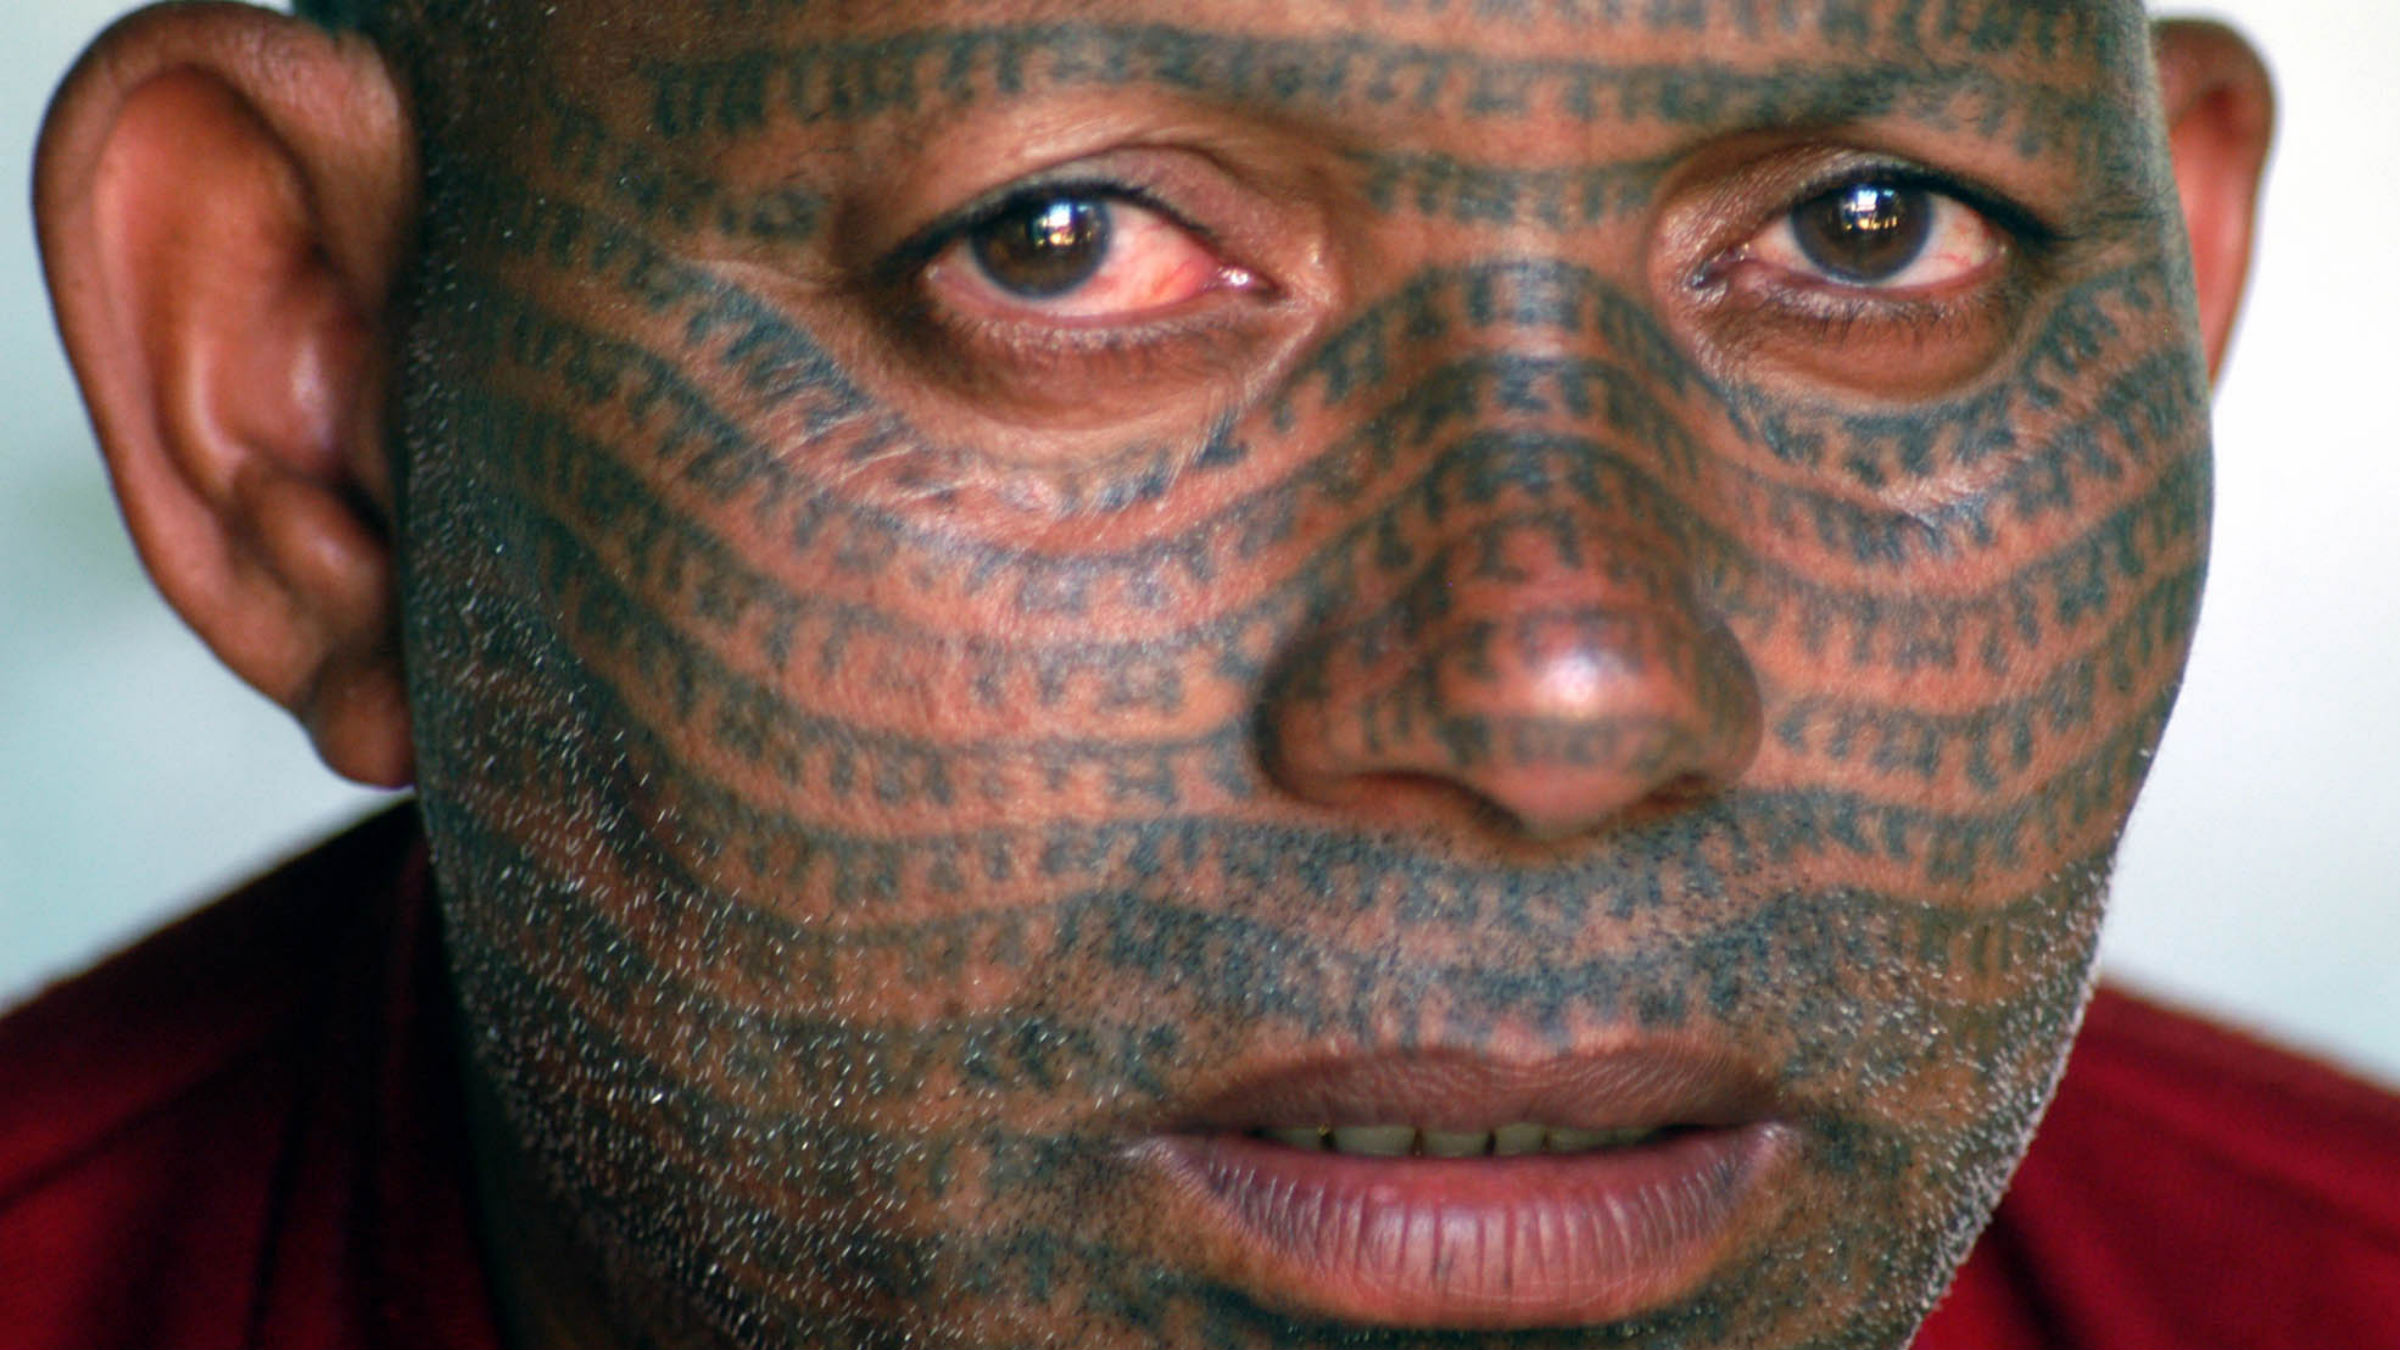 Firatram, 47, of the Ramnami Panth sect, looks on with tattooed face in village Khapradi, in the northern Indian state of Chhatisgarh, Wednesday, Sept. 22, 2004. This sect, consisting mainly of the lower castes, often have their bodies tattooed with the name of Hindu God Ram.